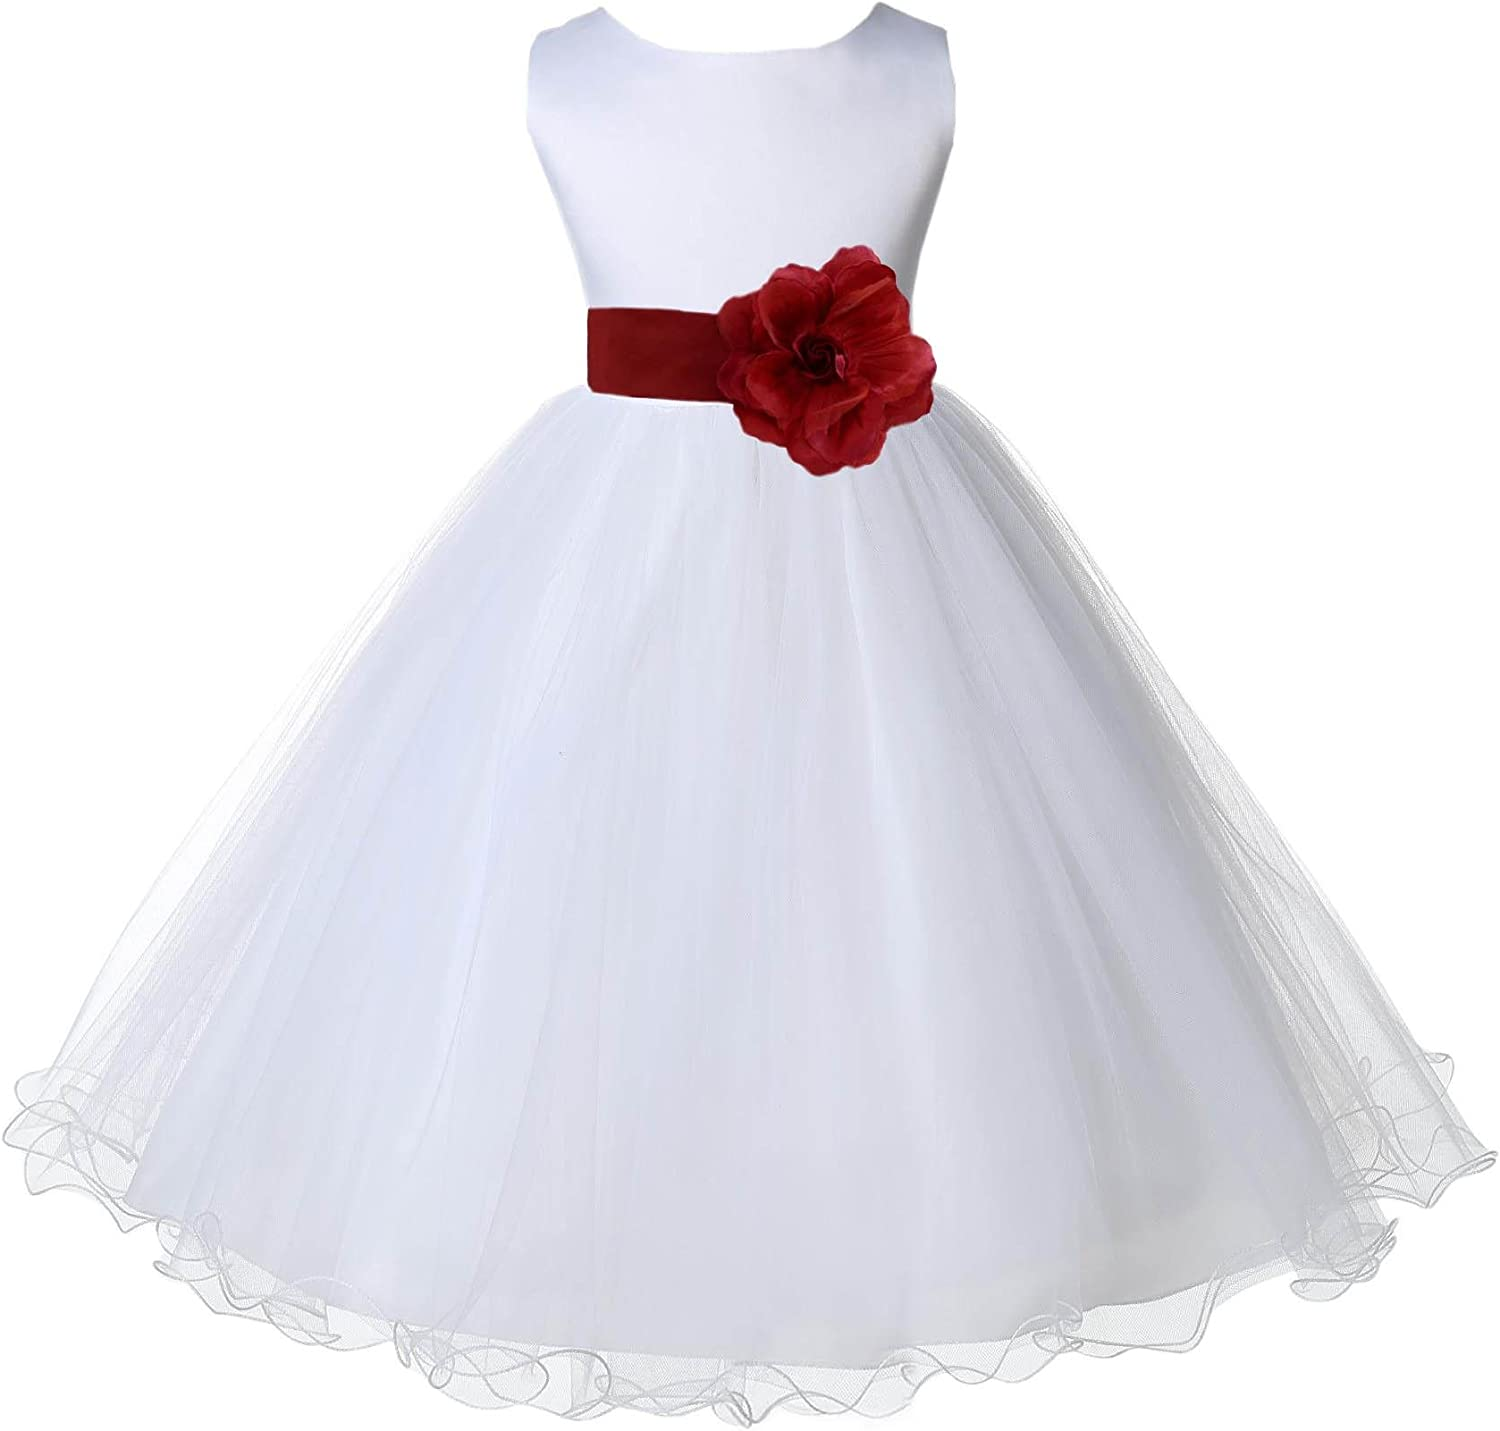 Wedding Pageant White Flower Girl Rattail Edge Tulle Dress 829s